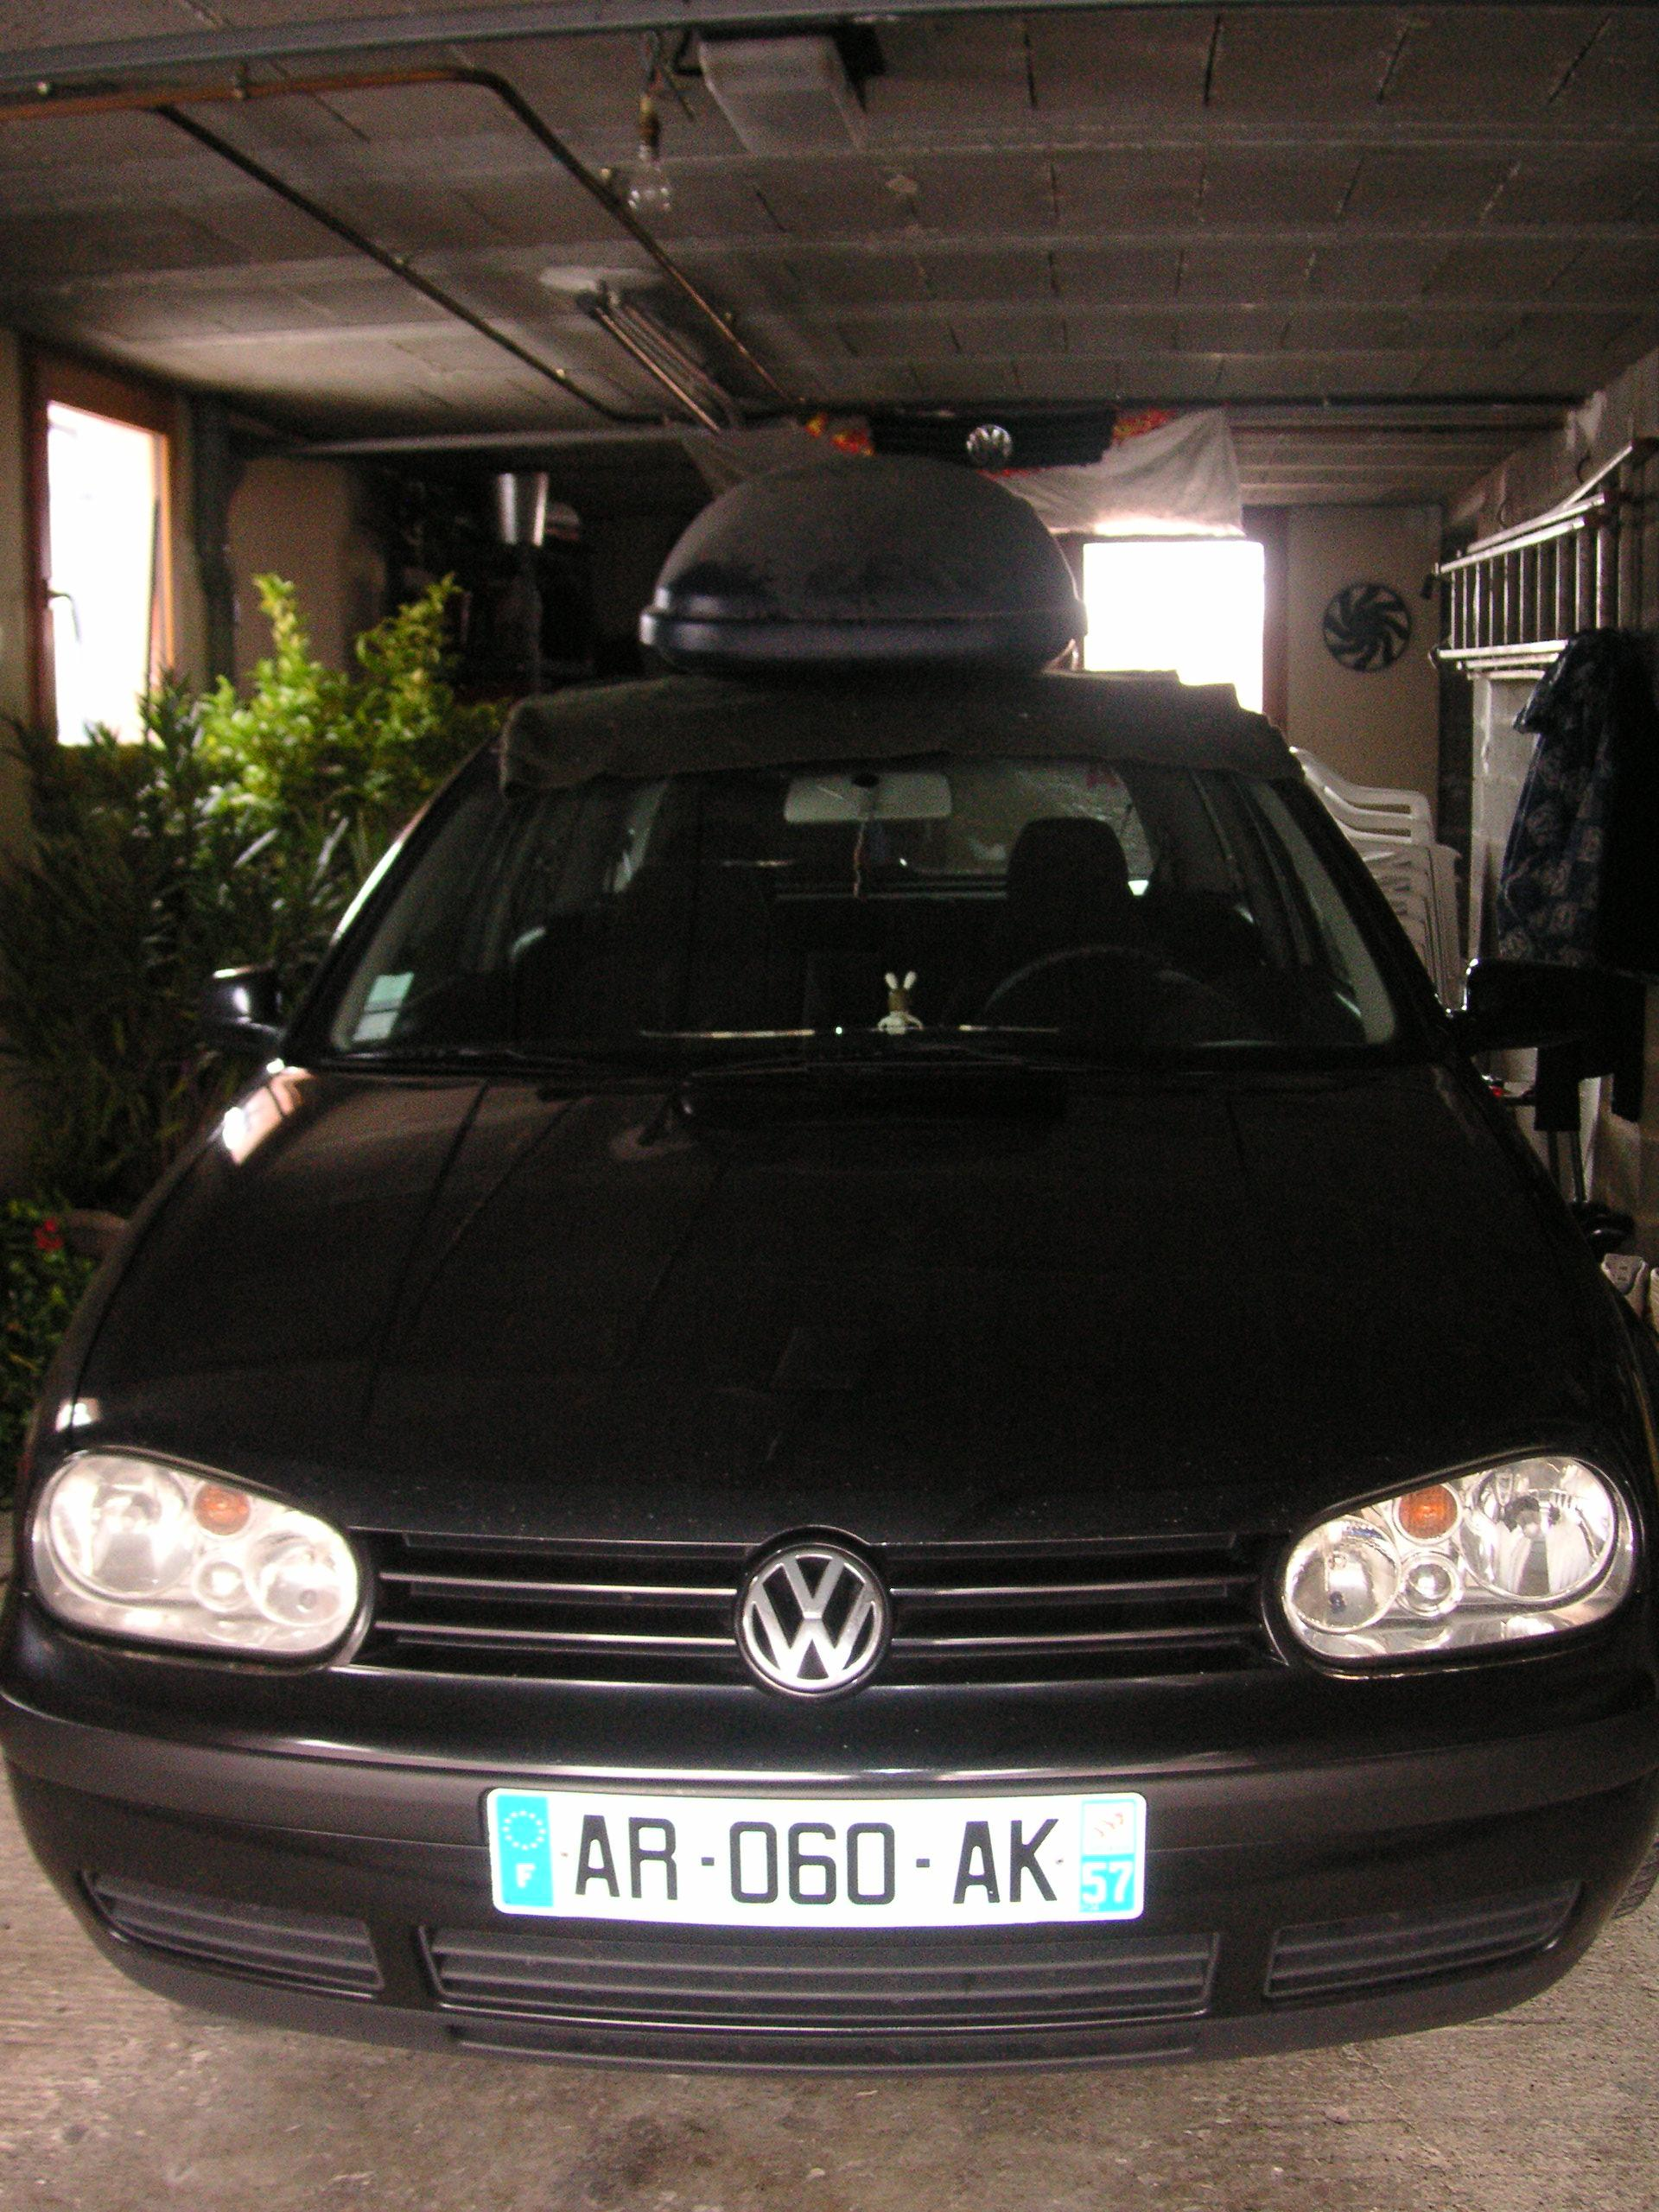 vw golf iv tdi 90 basis 1999 jantes peintes bombing garage des golf iv tdi 90 page 3. Black Bedroom Furniture Sets. Home Design Ideas